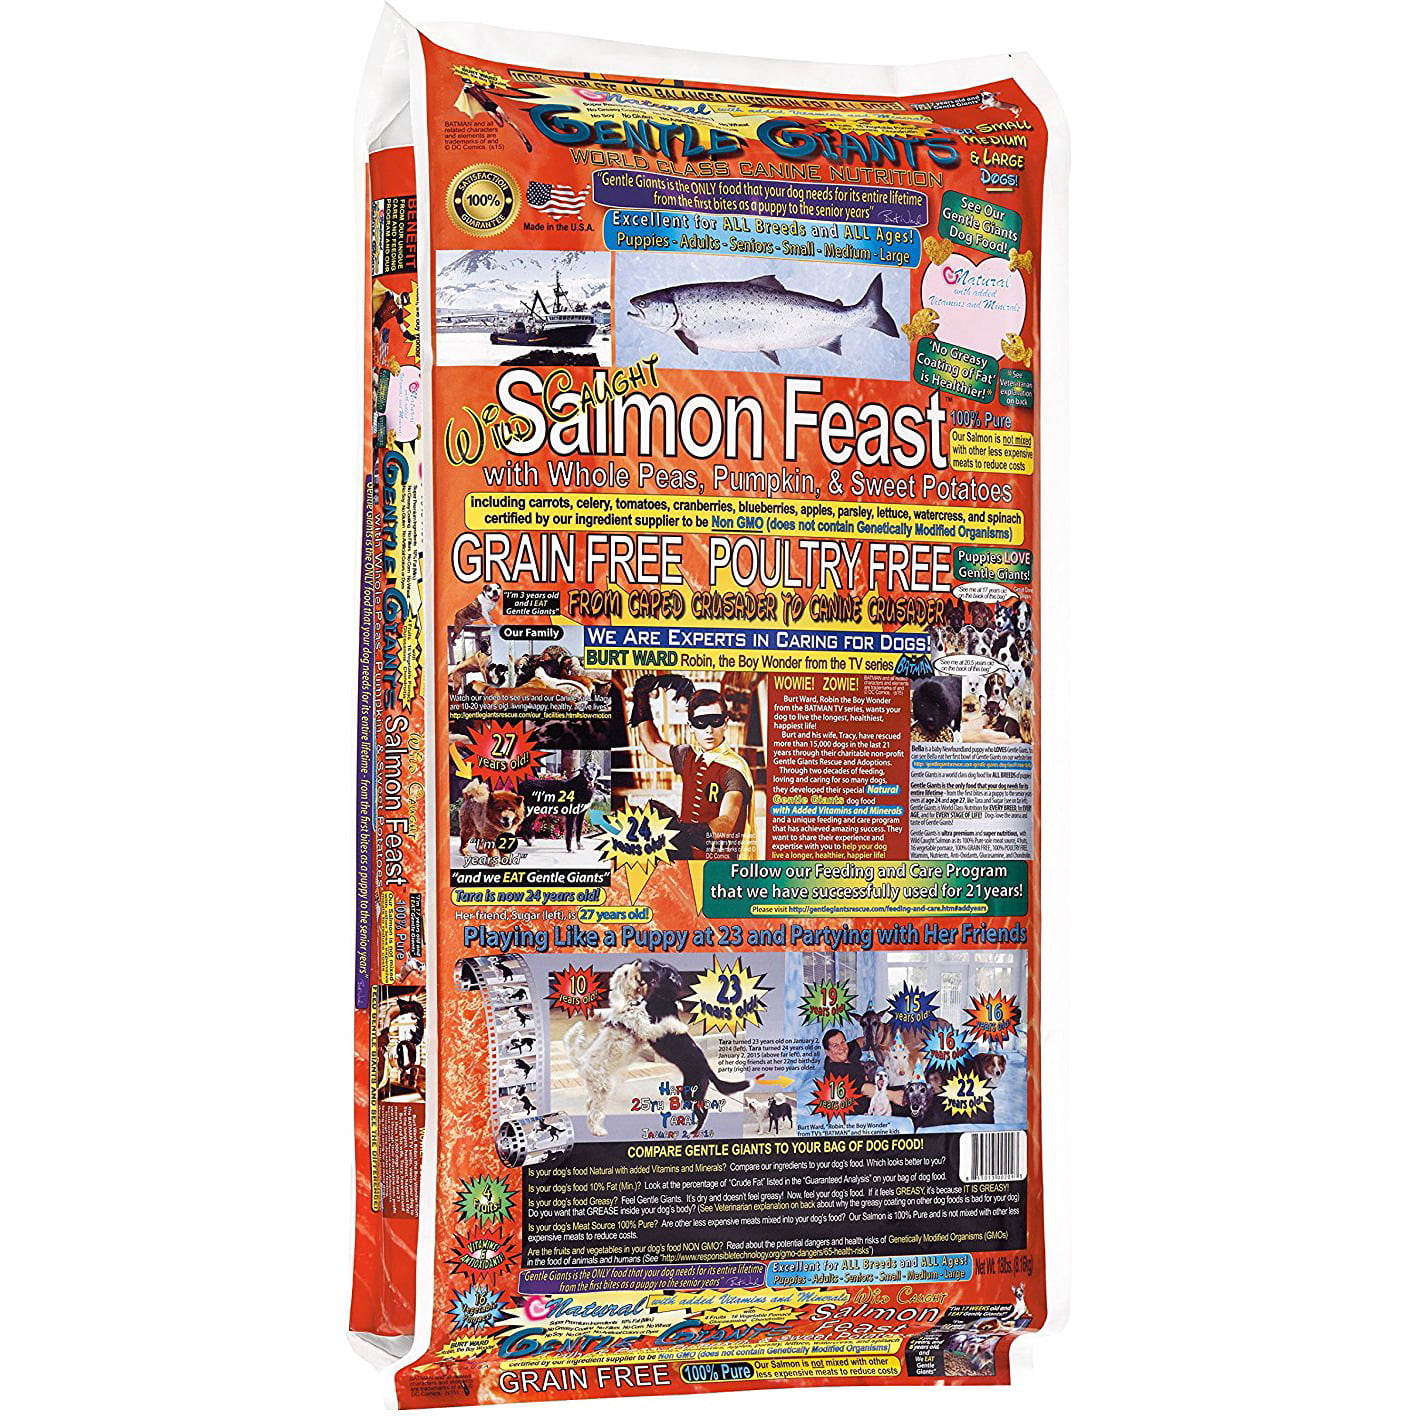 Gentle Giants Canine Cuisine Salmon Dry Dog Food, 18 lbs by Gentle Giants Rescue and Adoptions, Inc.